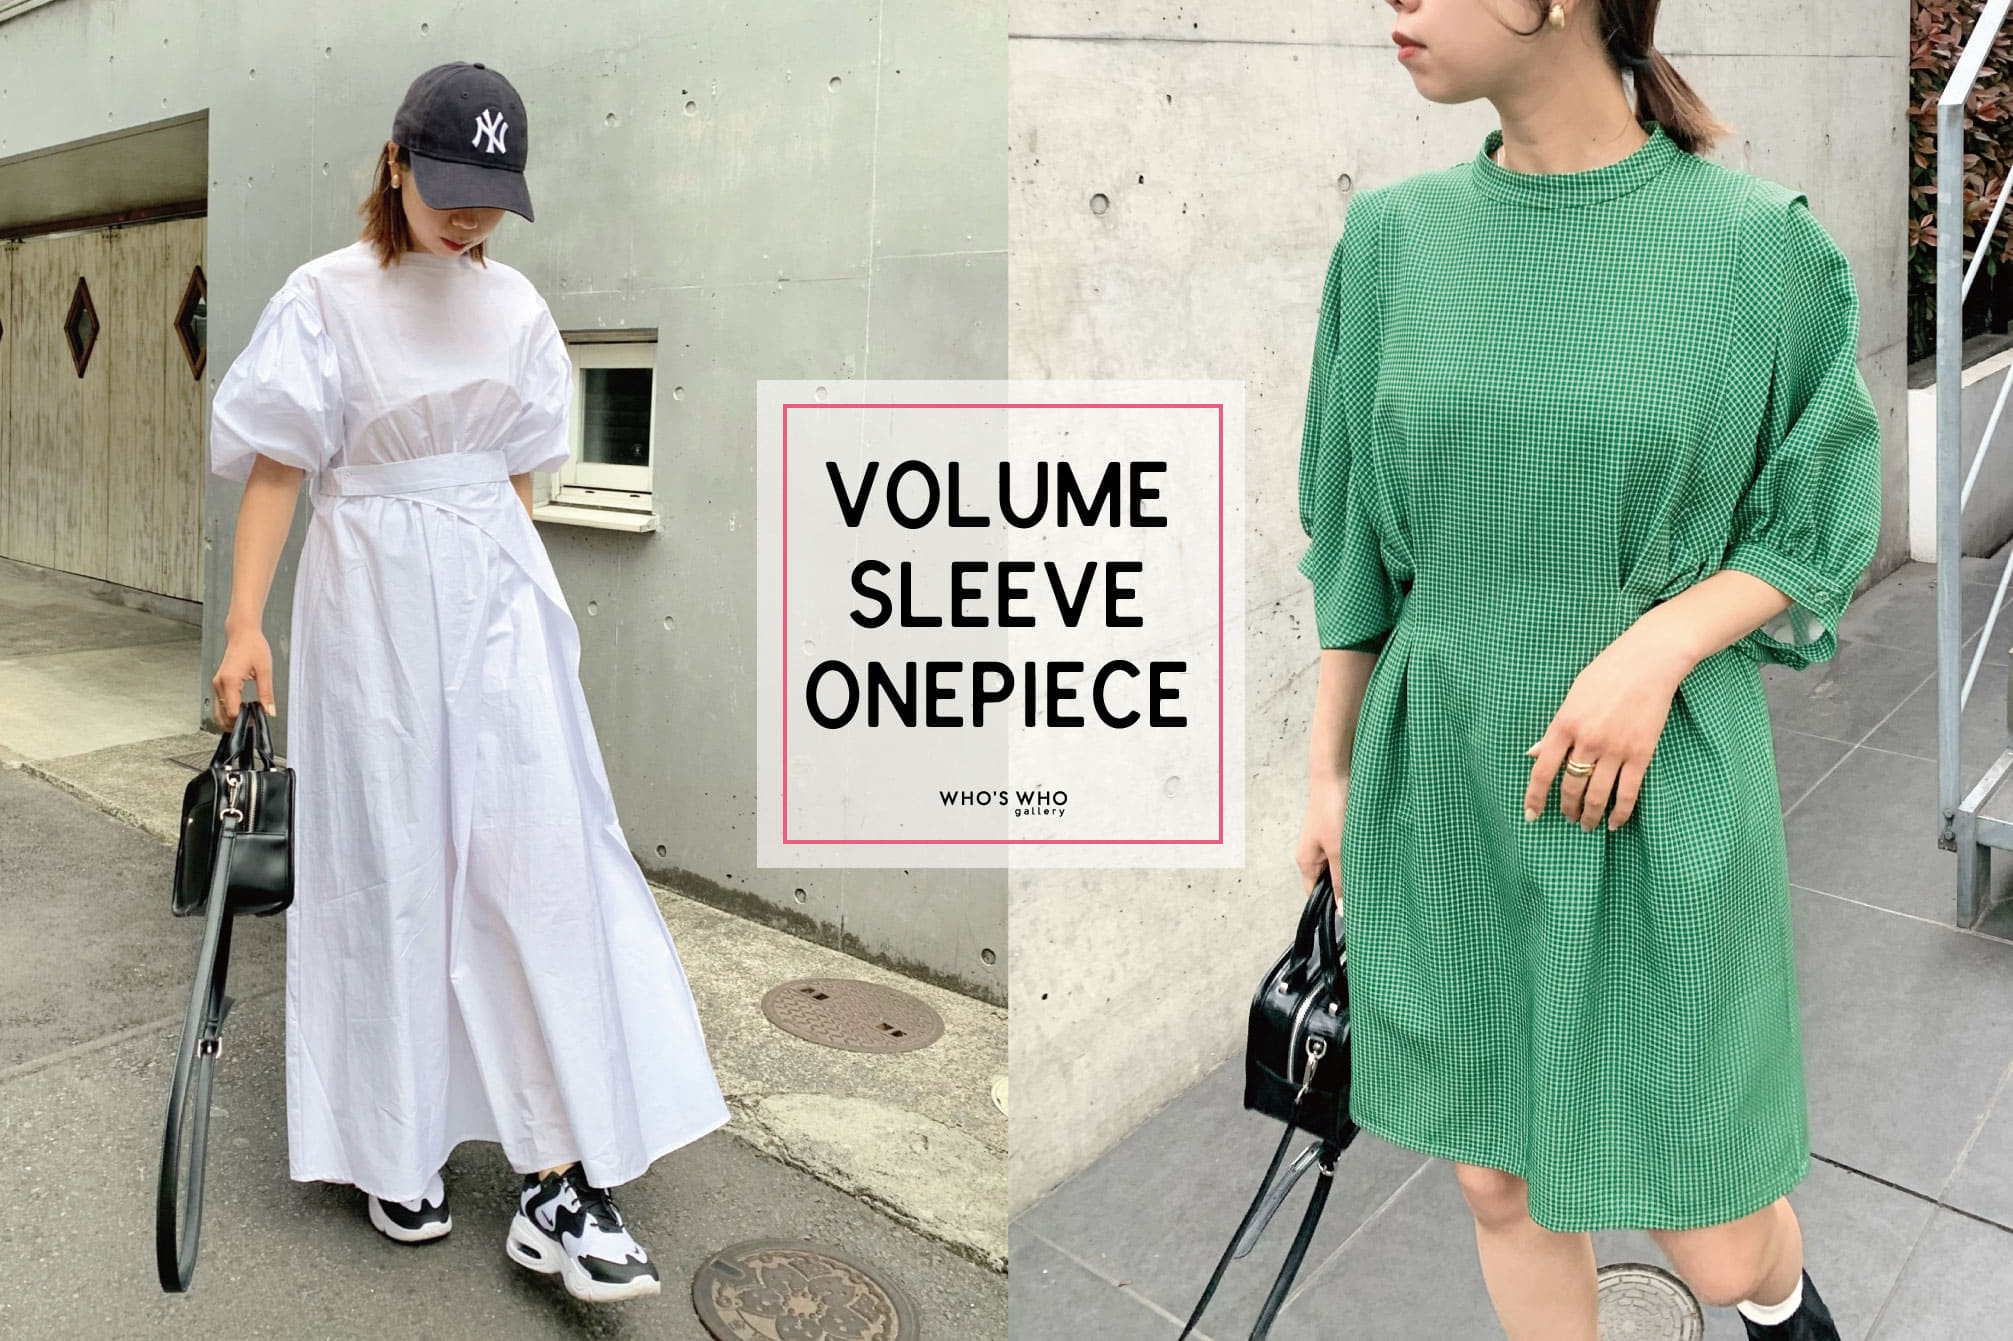 WHO'S WHO gallery 【SUMMER ONEPIECE】